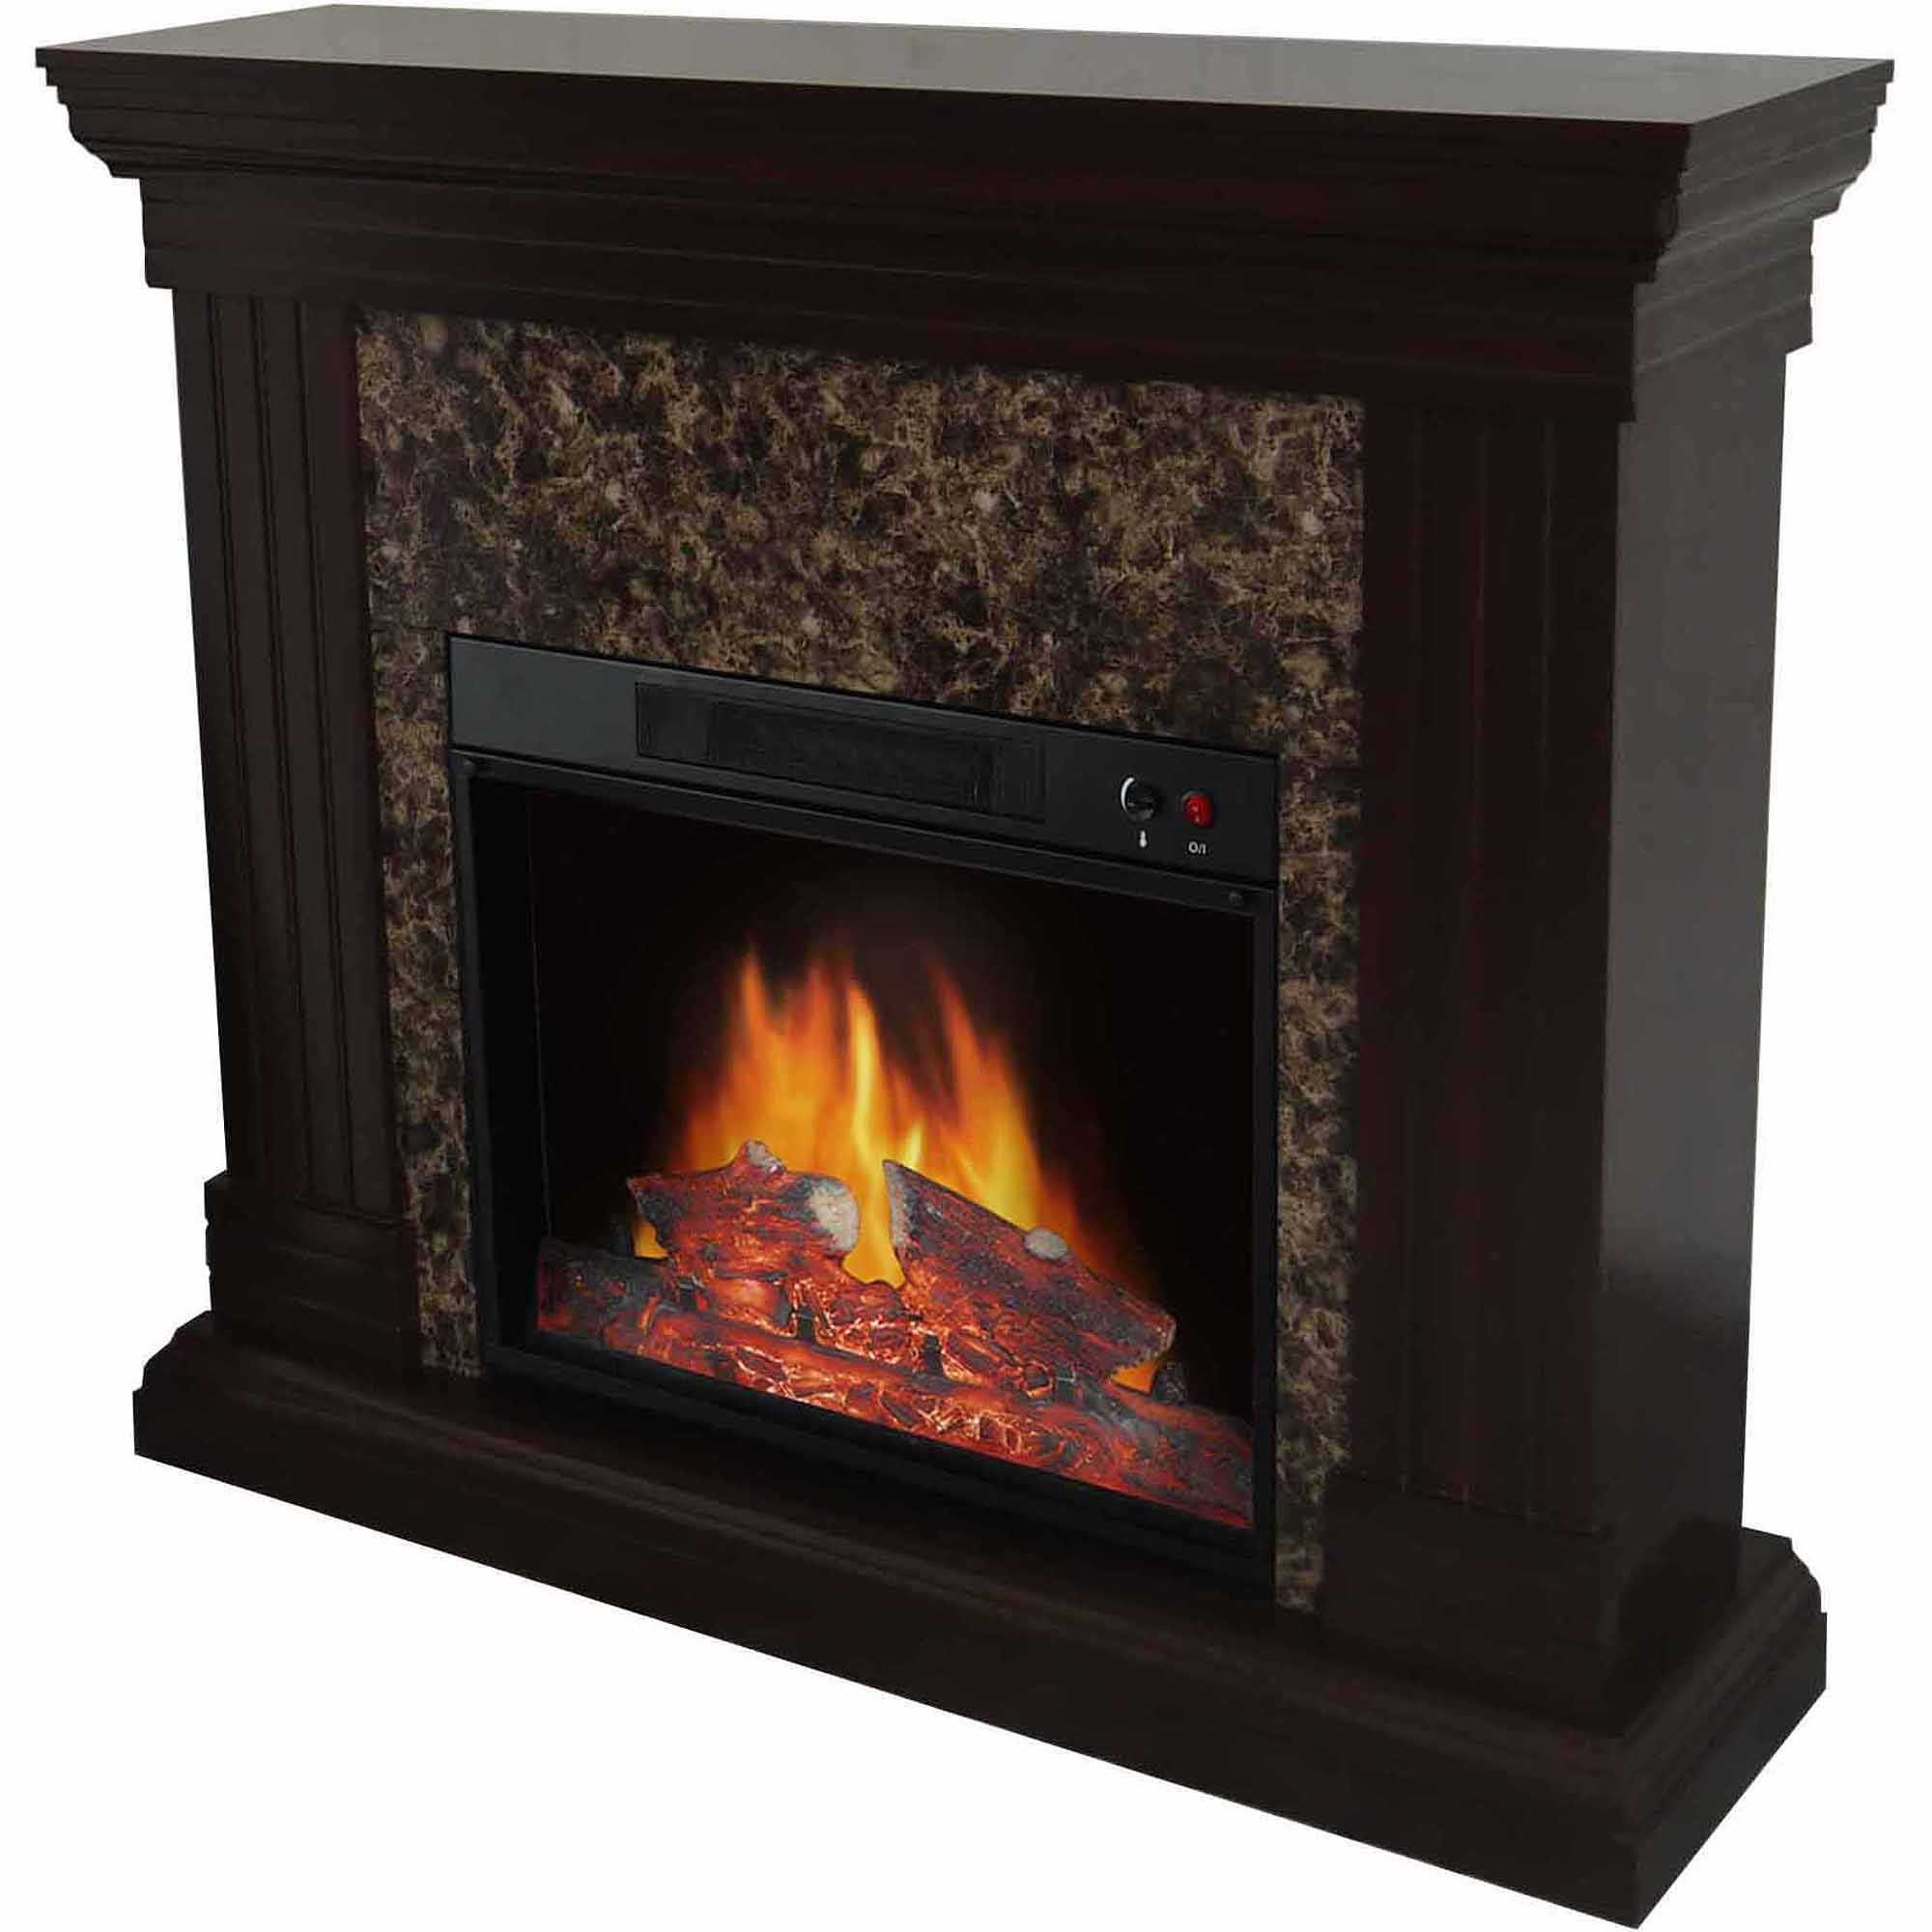 Decor Flame Electric Space Heater Fireplace with 44 Mantle  Walmartcom